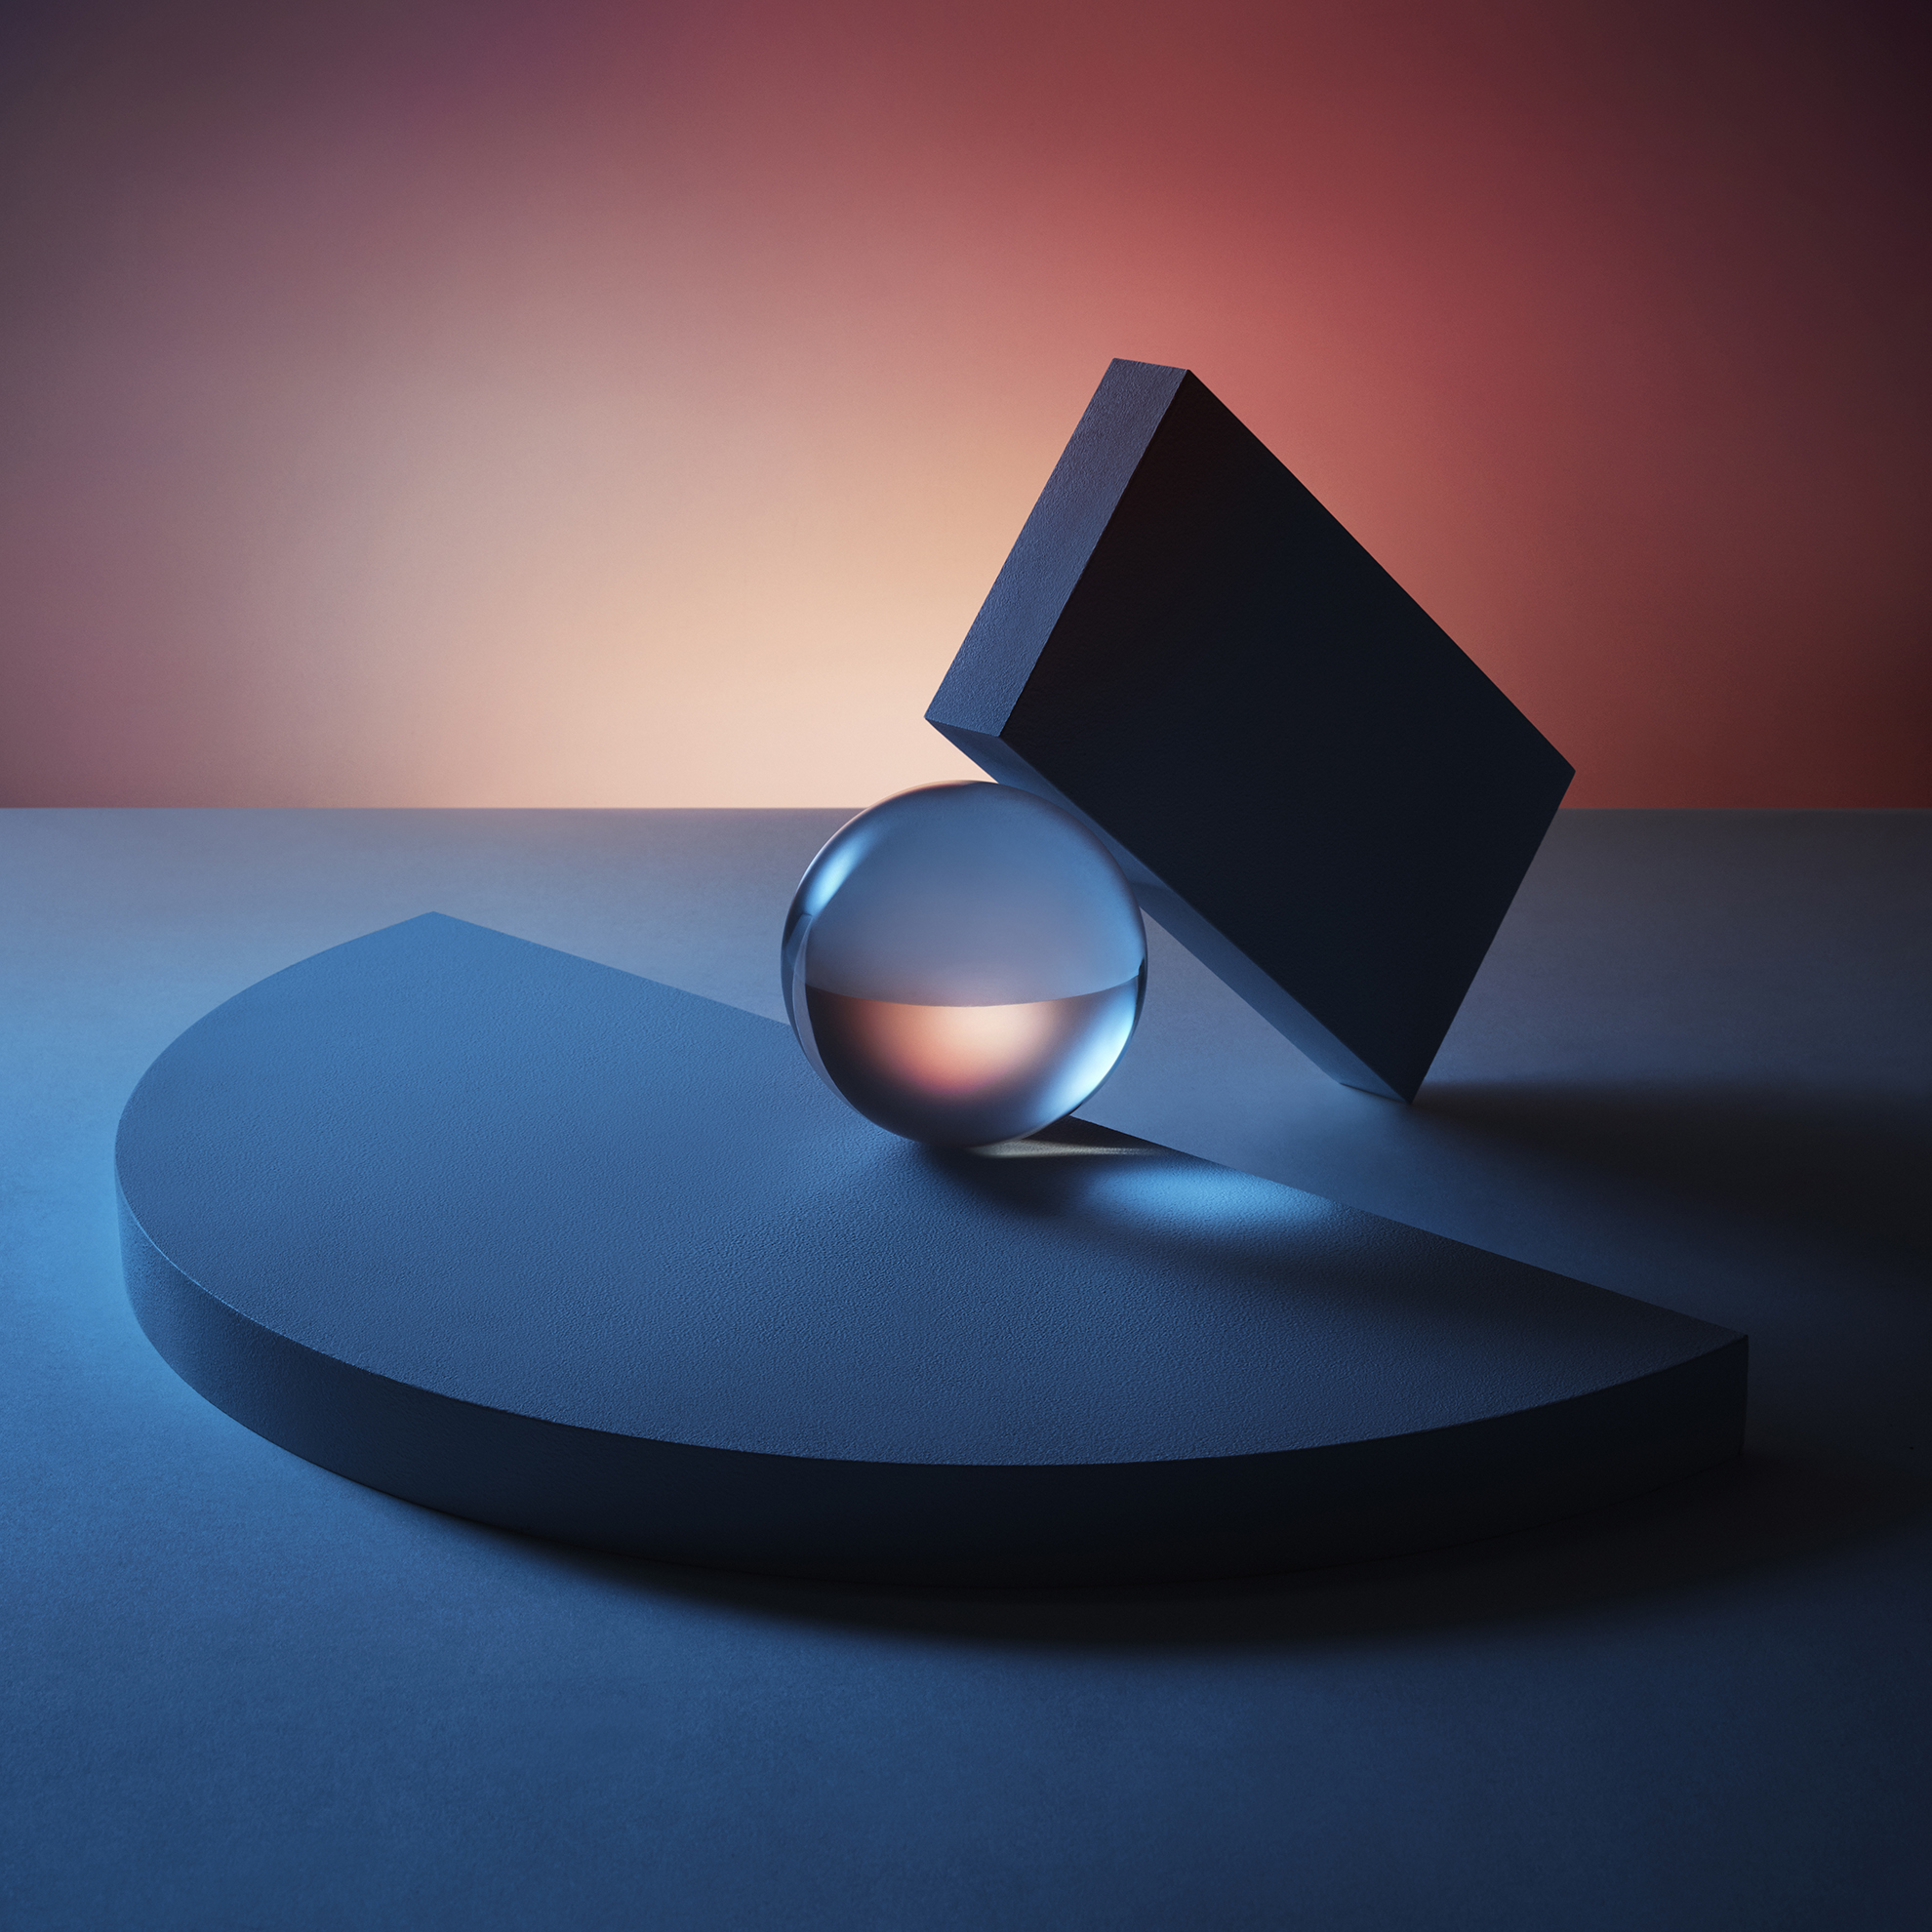 dusk-sunset-glass-sphere-orb-geometric-shapes-art-photography-london-still-life-photographer-joshua-caudwell-1.jpg